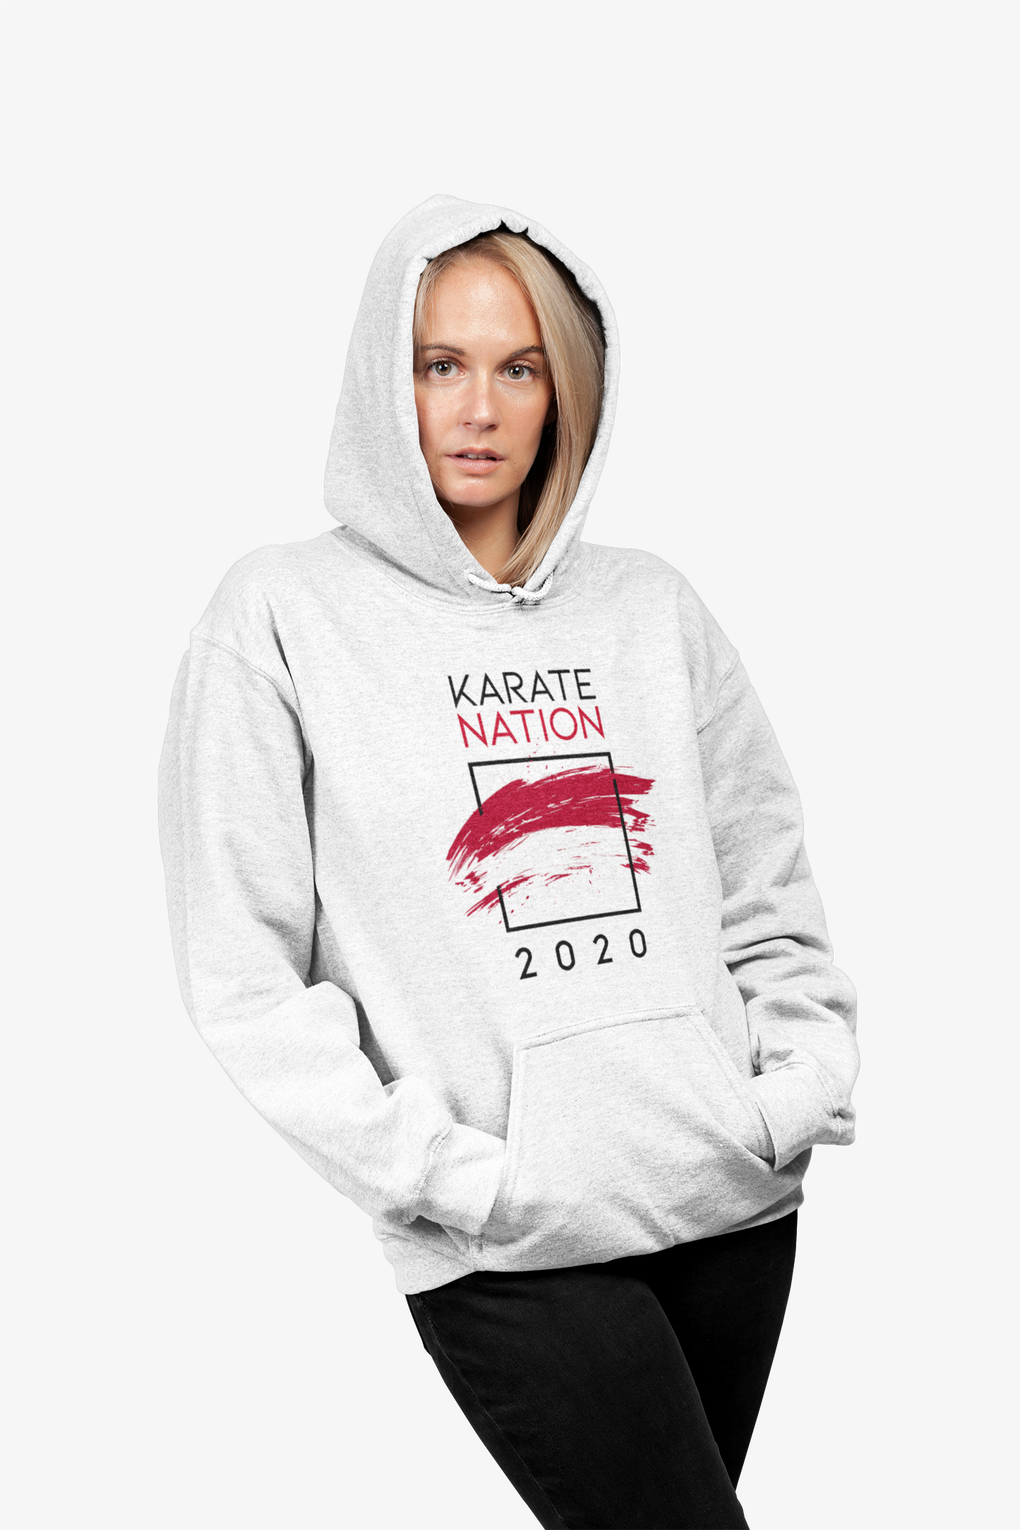 Karate Nation Indonesia Square Design Hoodie - Unisex